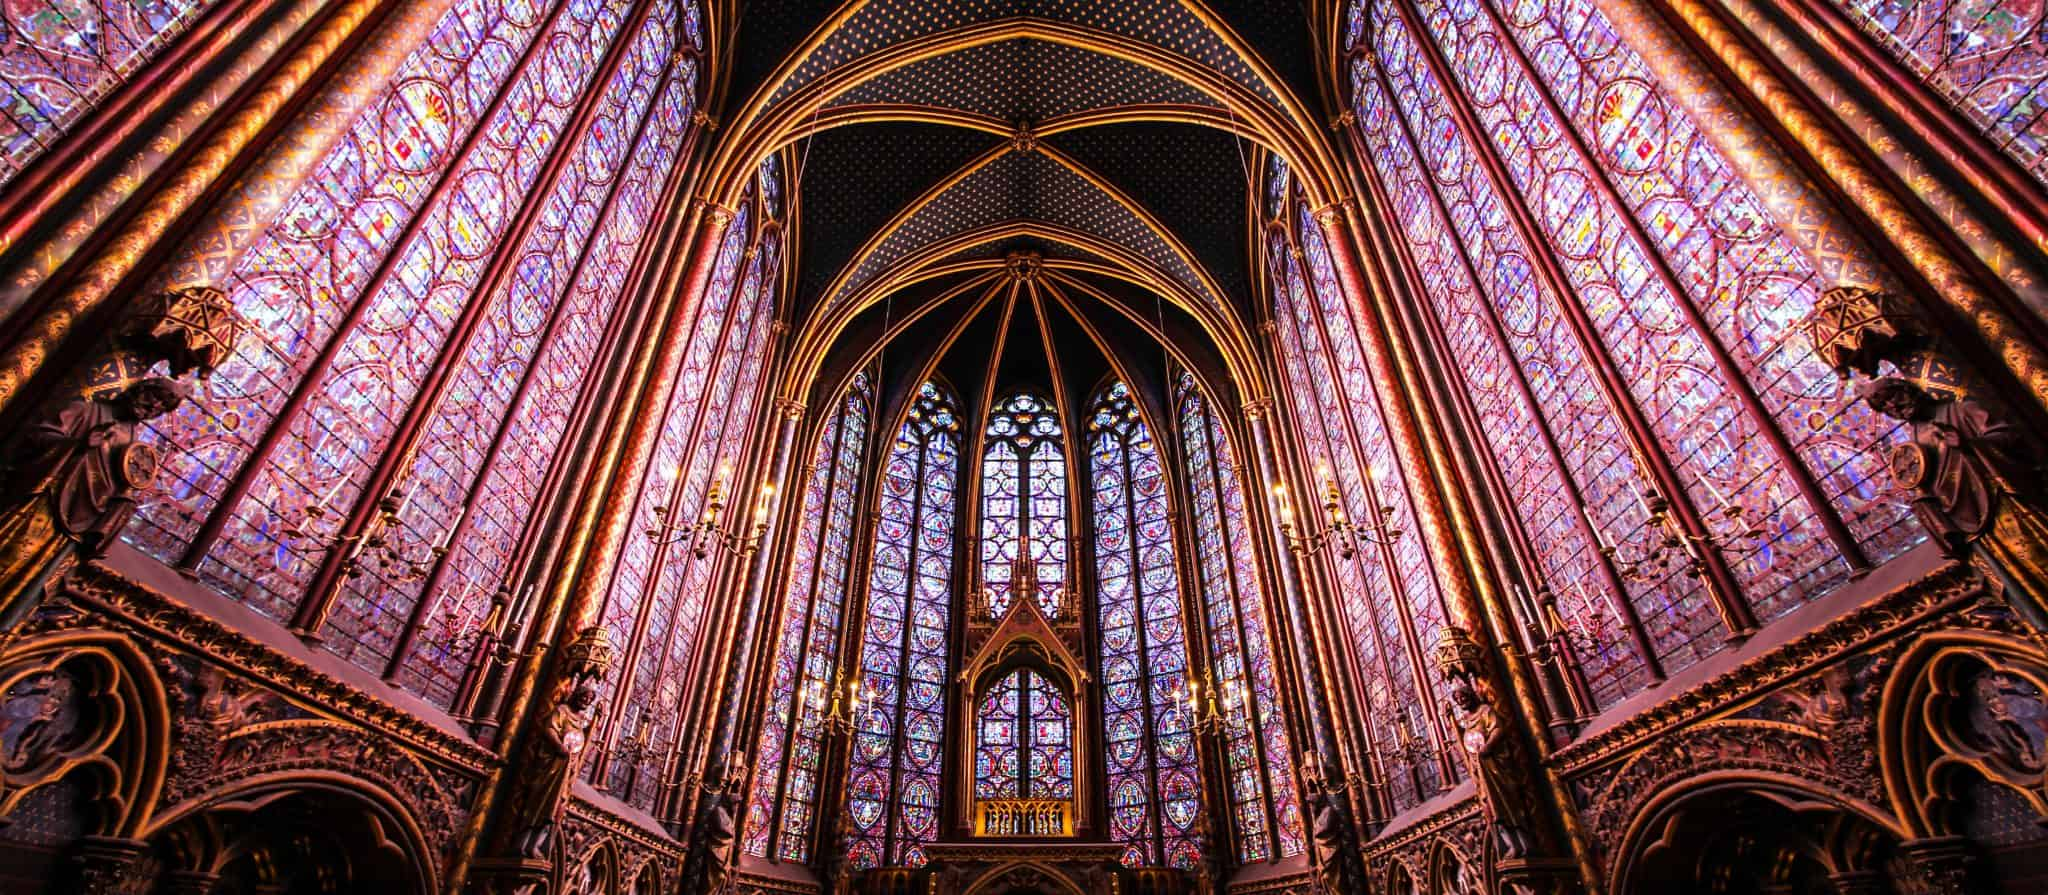 Stained Glass at Sainte-Chapelle, Paris - 4 days in Paris what to do